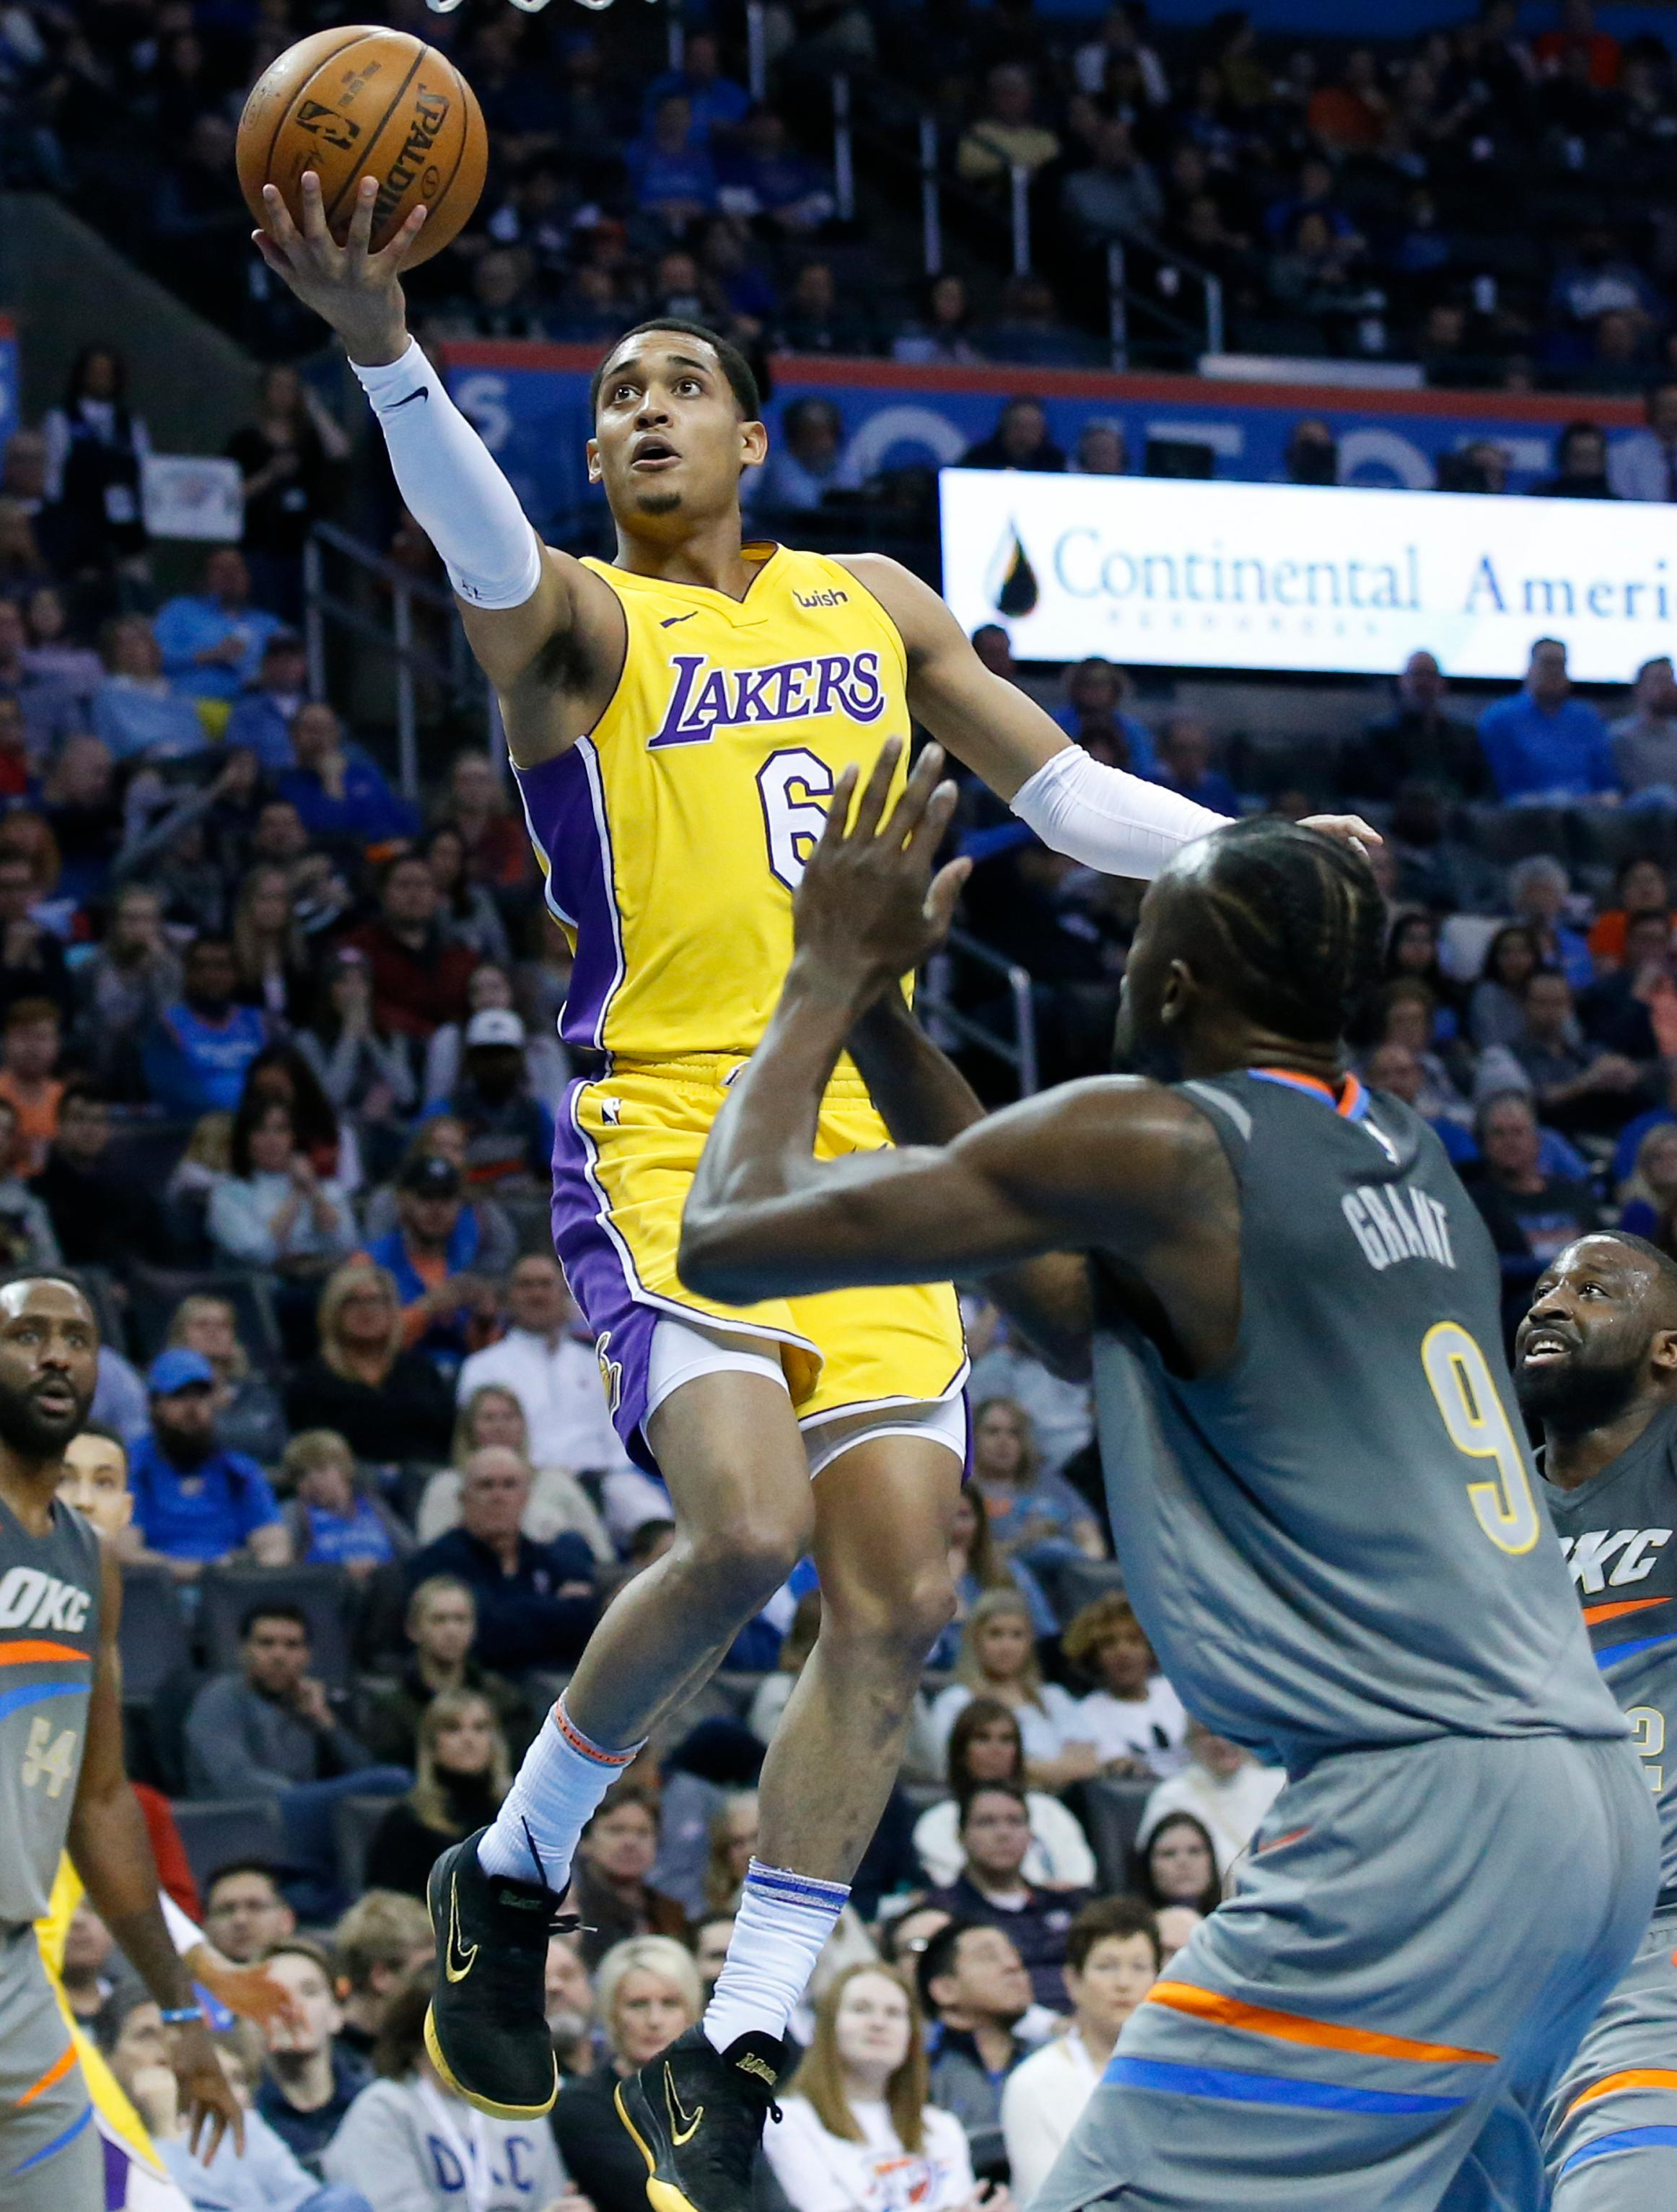 Los Angeles Lakers guard Jordan Clarkson (6) goes to the basket in front of Oklahoma City Thunder forward Jerami Grant (9) in the first half of an NBA basketball game in Oklahoma City, Sunday, Feb. 4, 2018. (AP Photo/Sue Ogrocki)